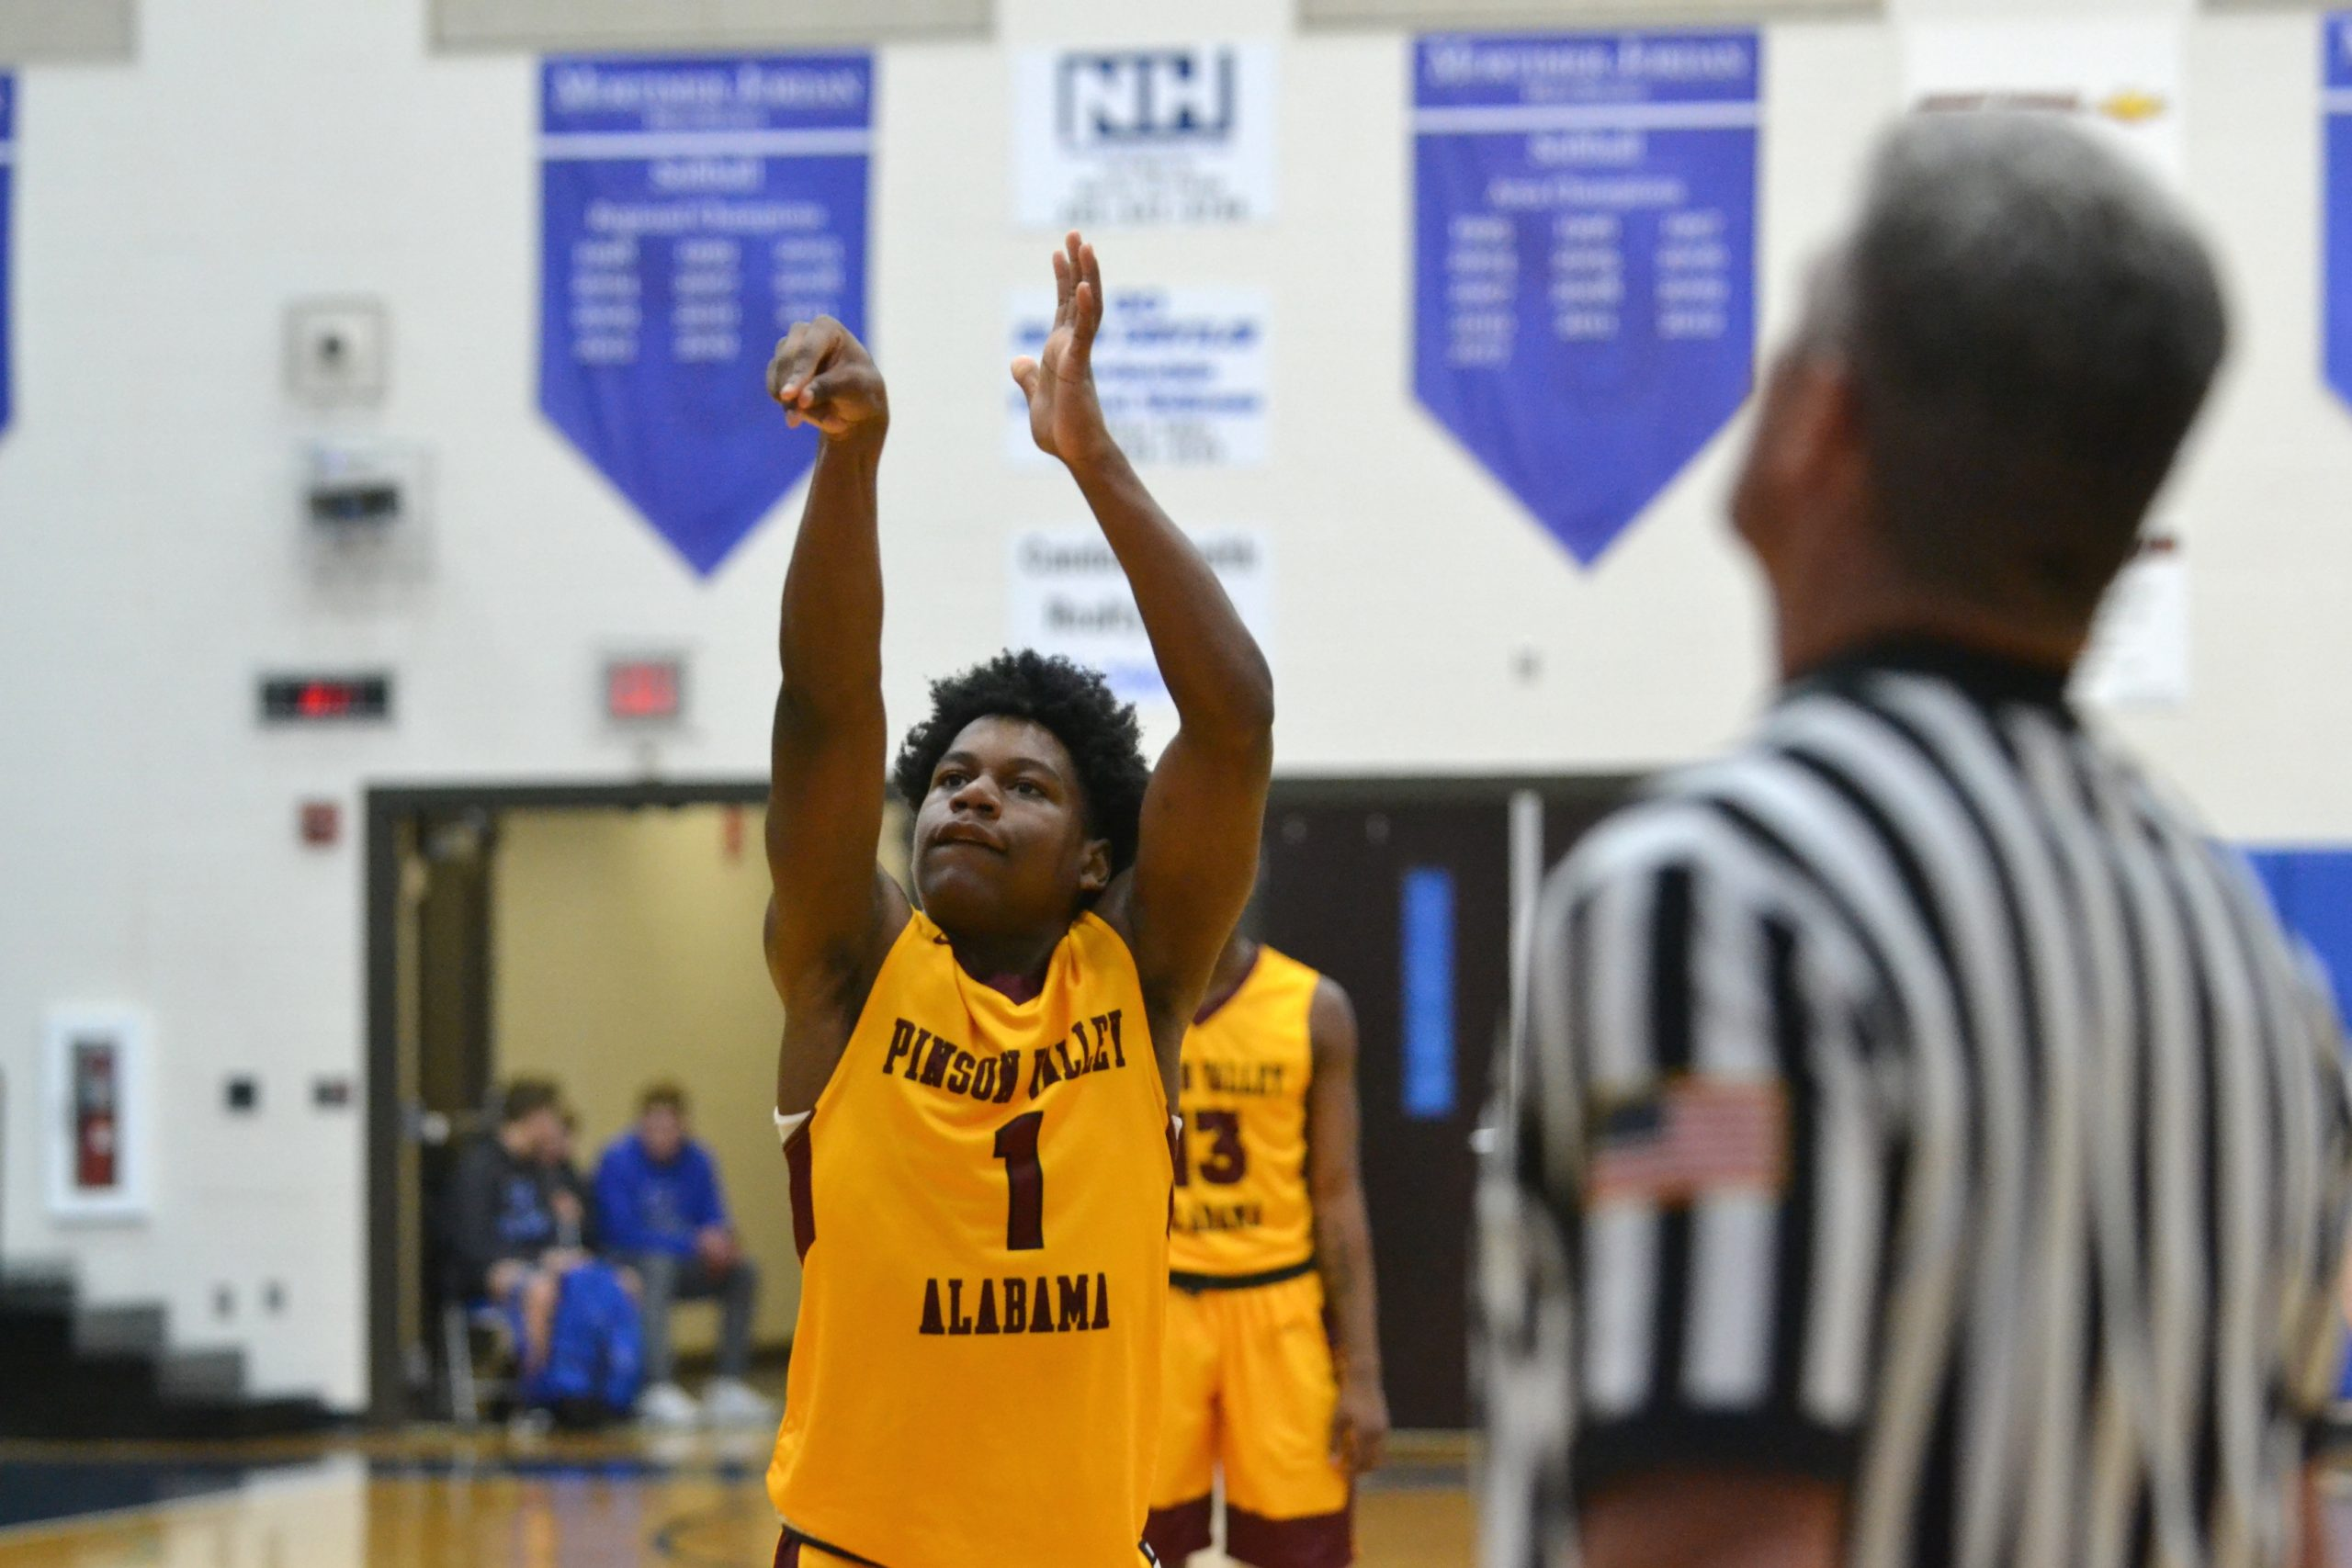 HIGH SCHOOL HOOPS: Moody completes area sweep; Pinson stays red hot